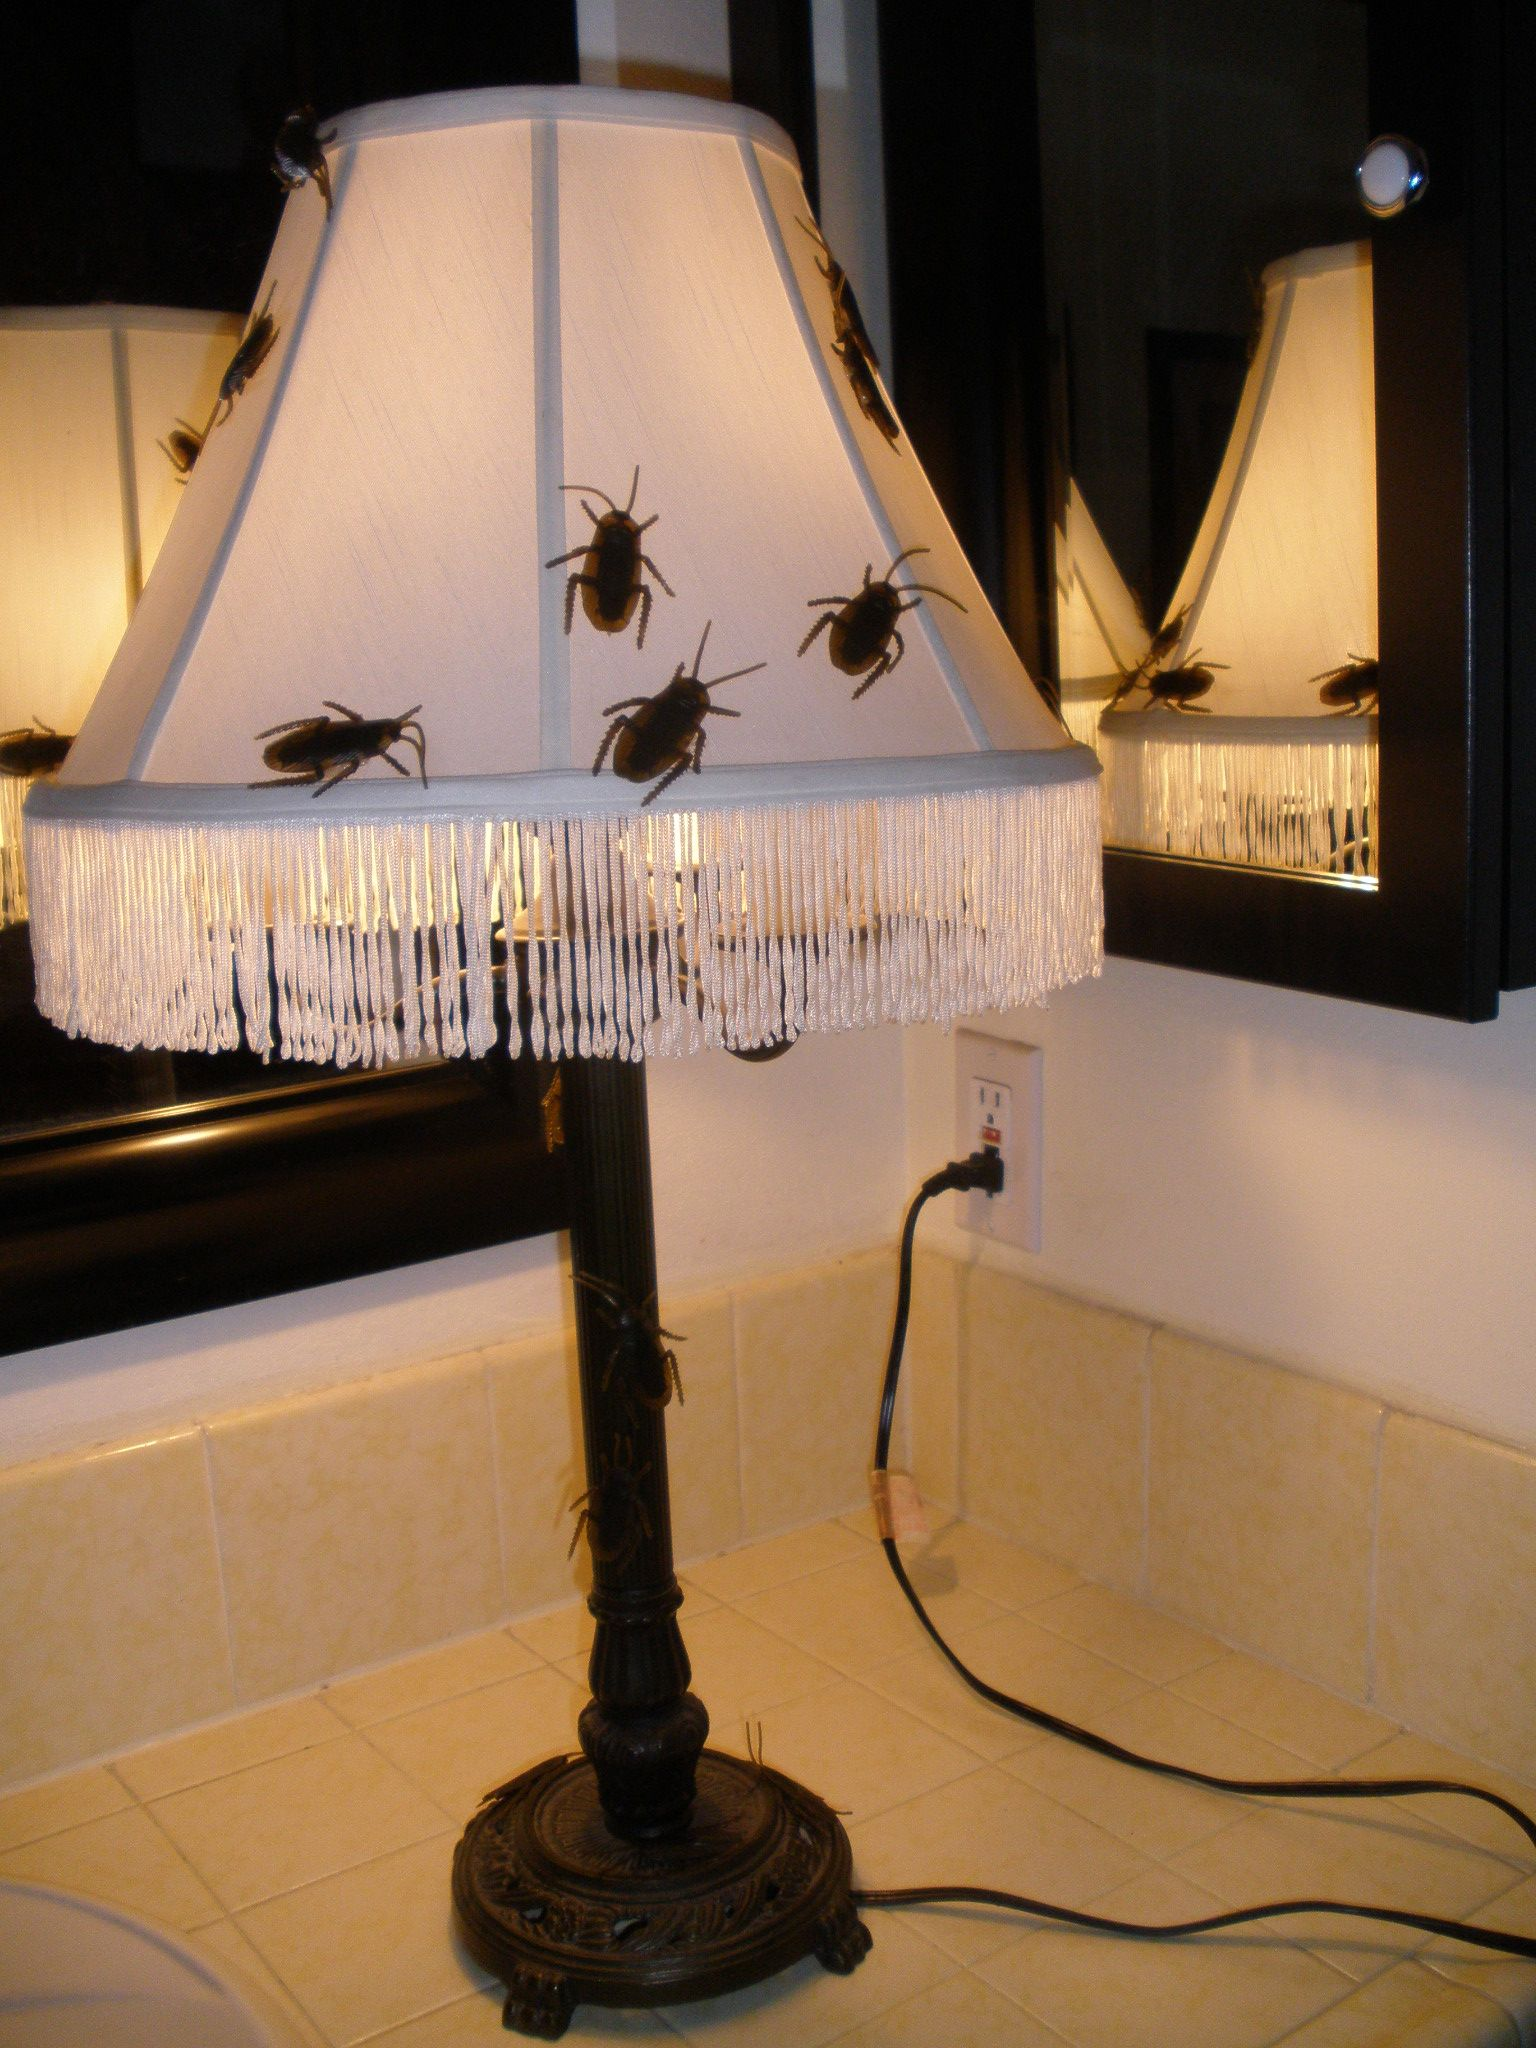 New haunting decor lamp for 2014 Halloween $5 thrift store lamp - Diy Indoor Halloween Decorations